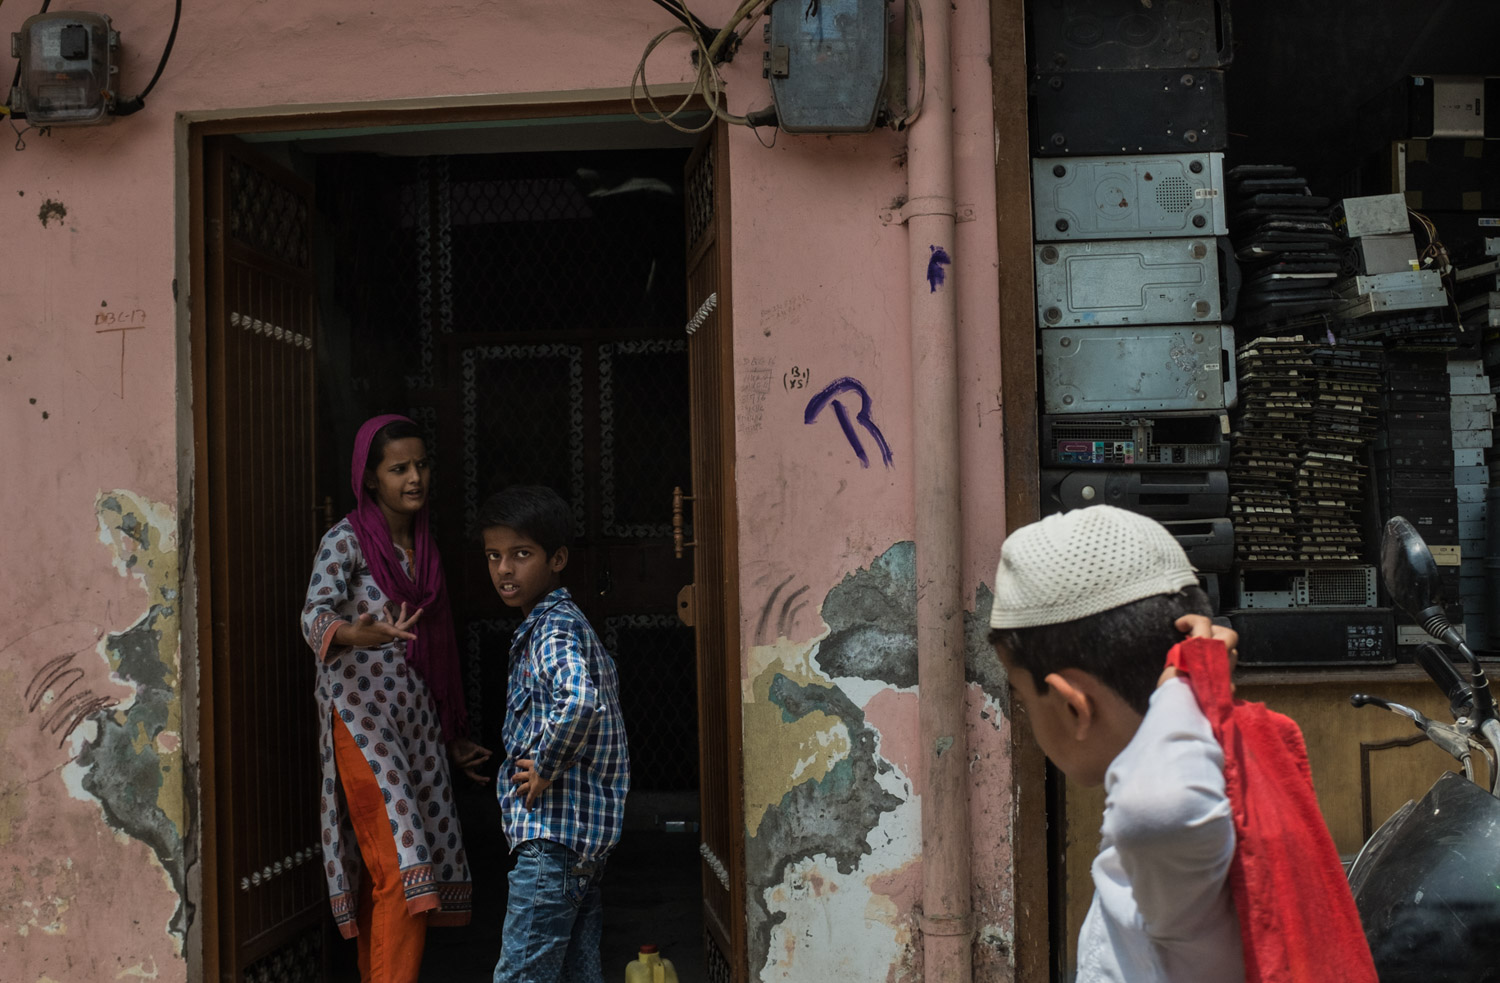 Mustafabad. Children interacting in front of their home, which also serves as a storage facility and  electronics dismantling workspace.